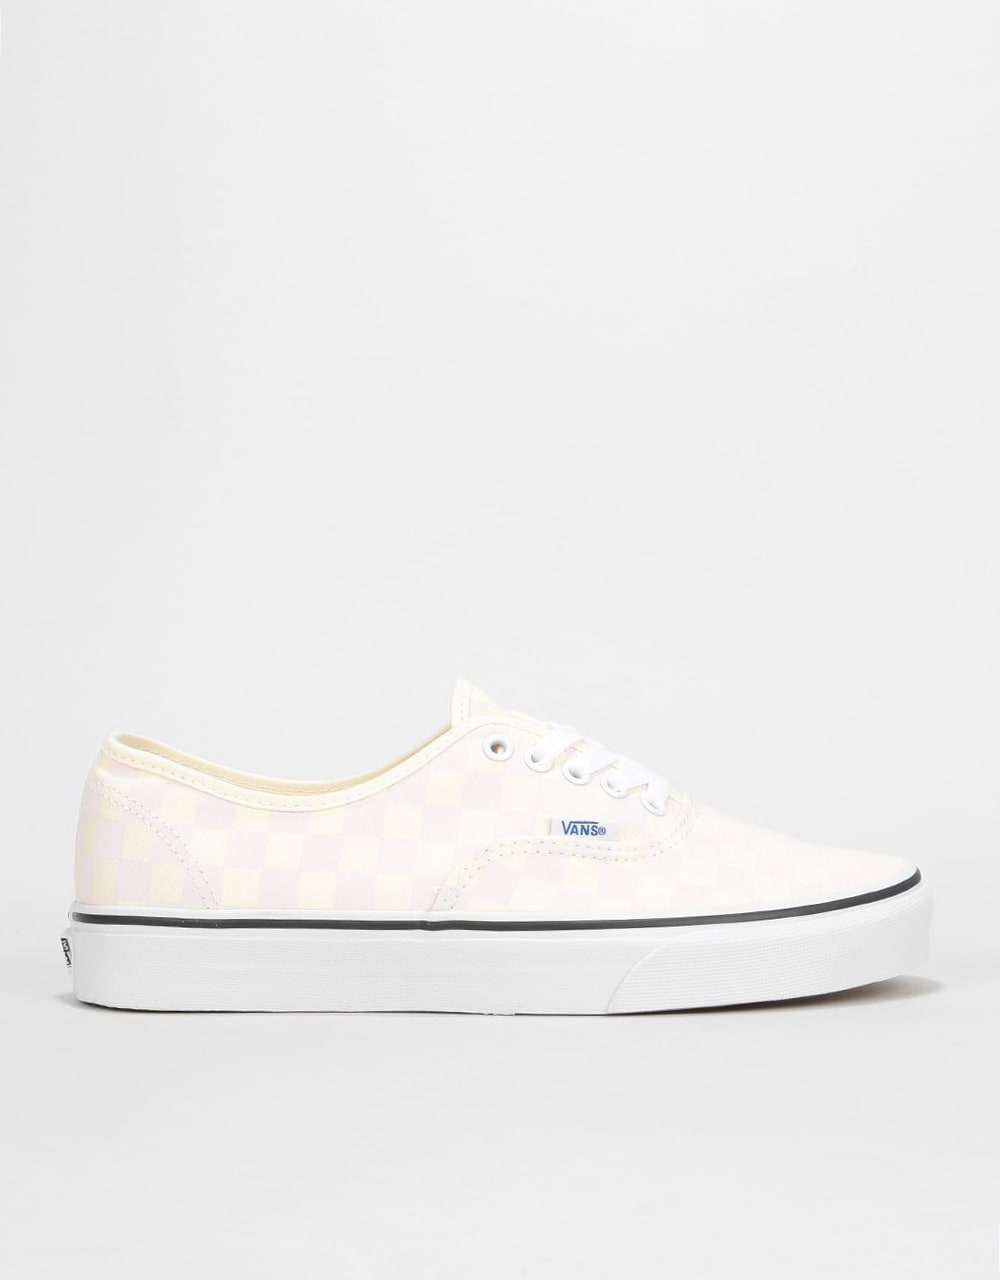 Vans Authentic Skate Shoes - (Checkerboard) Chalk Pink Classic White ... 0ad1481f4